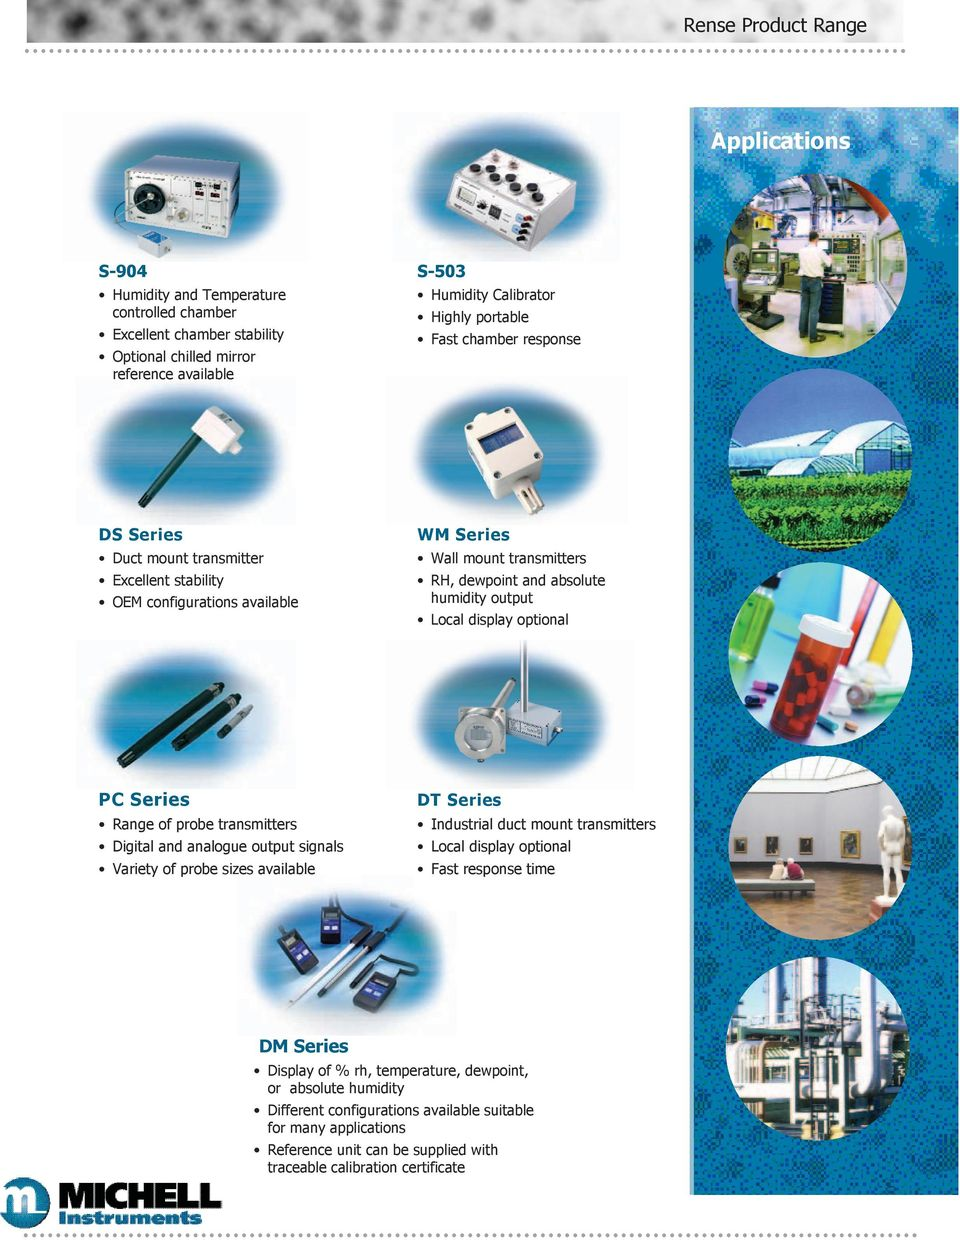 Series Range of probe transmitters Industrial duct mount transmitters Digital and analogue output signals Local display optional Variety of probe sizes available Fast response time Local display